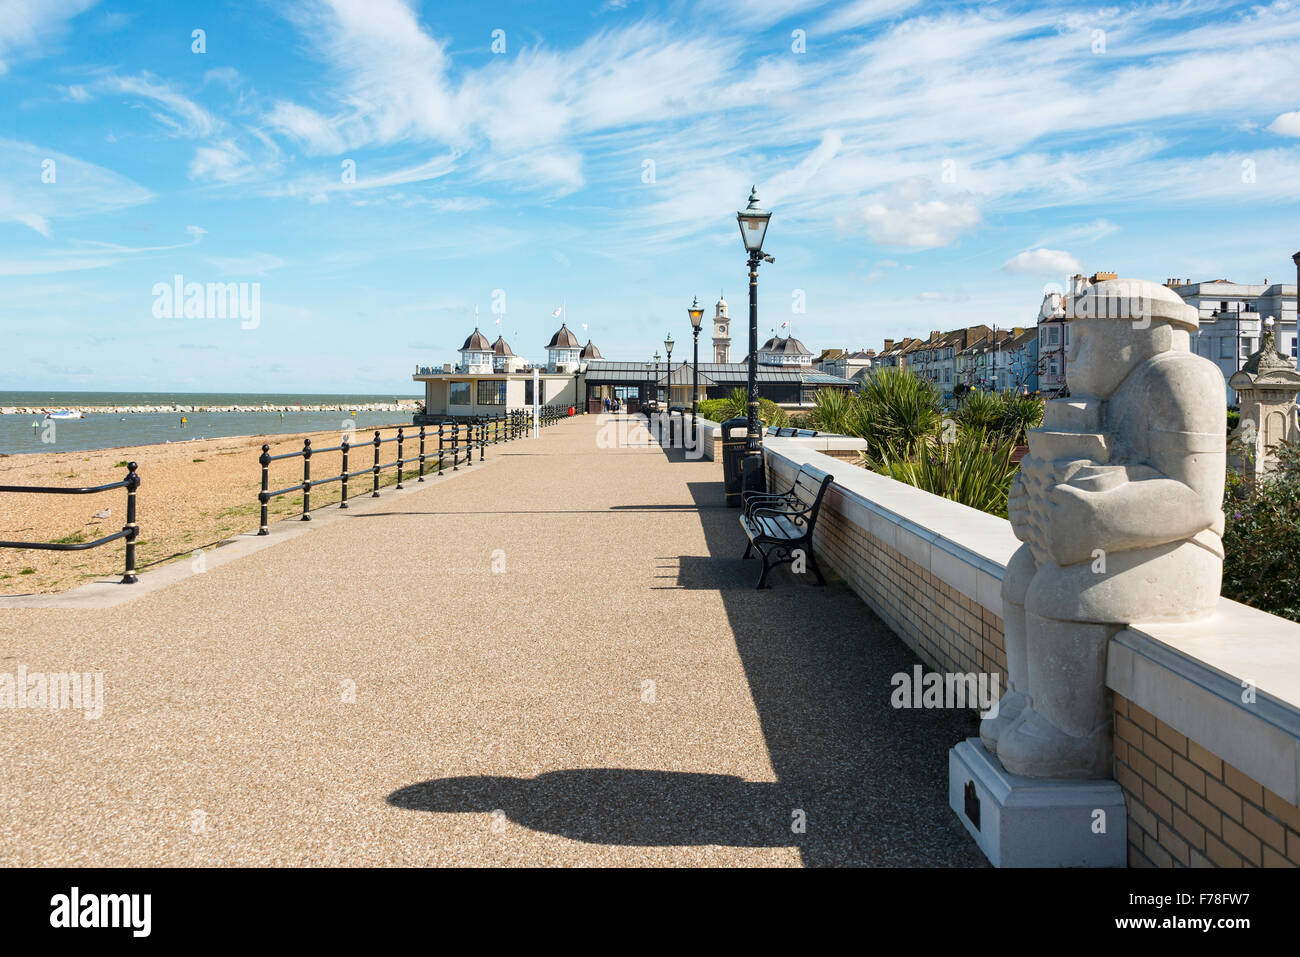 Beach promenade and Central Bandstand, Herne Bay, Kent, England, United Kingdom - Stock Image